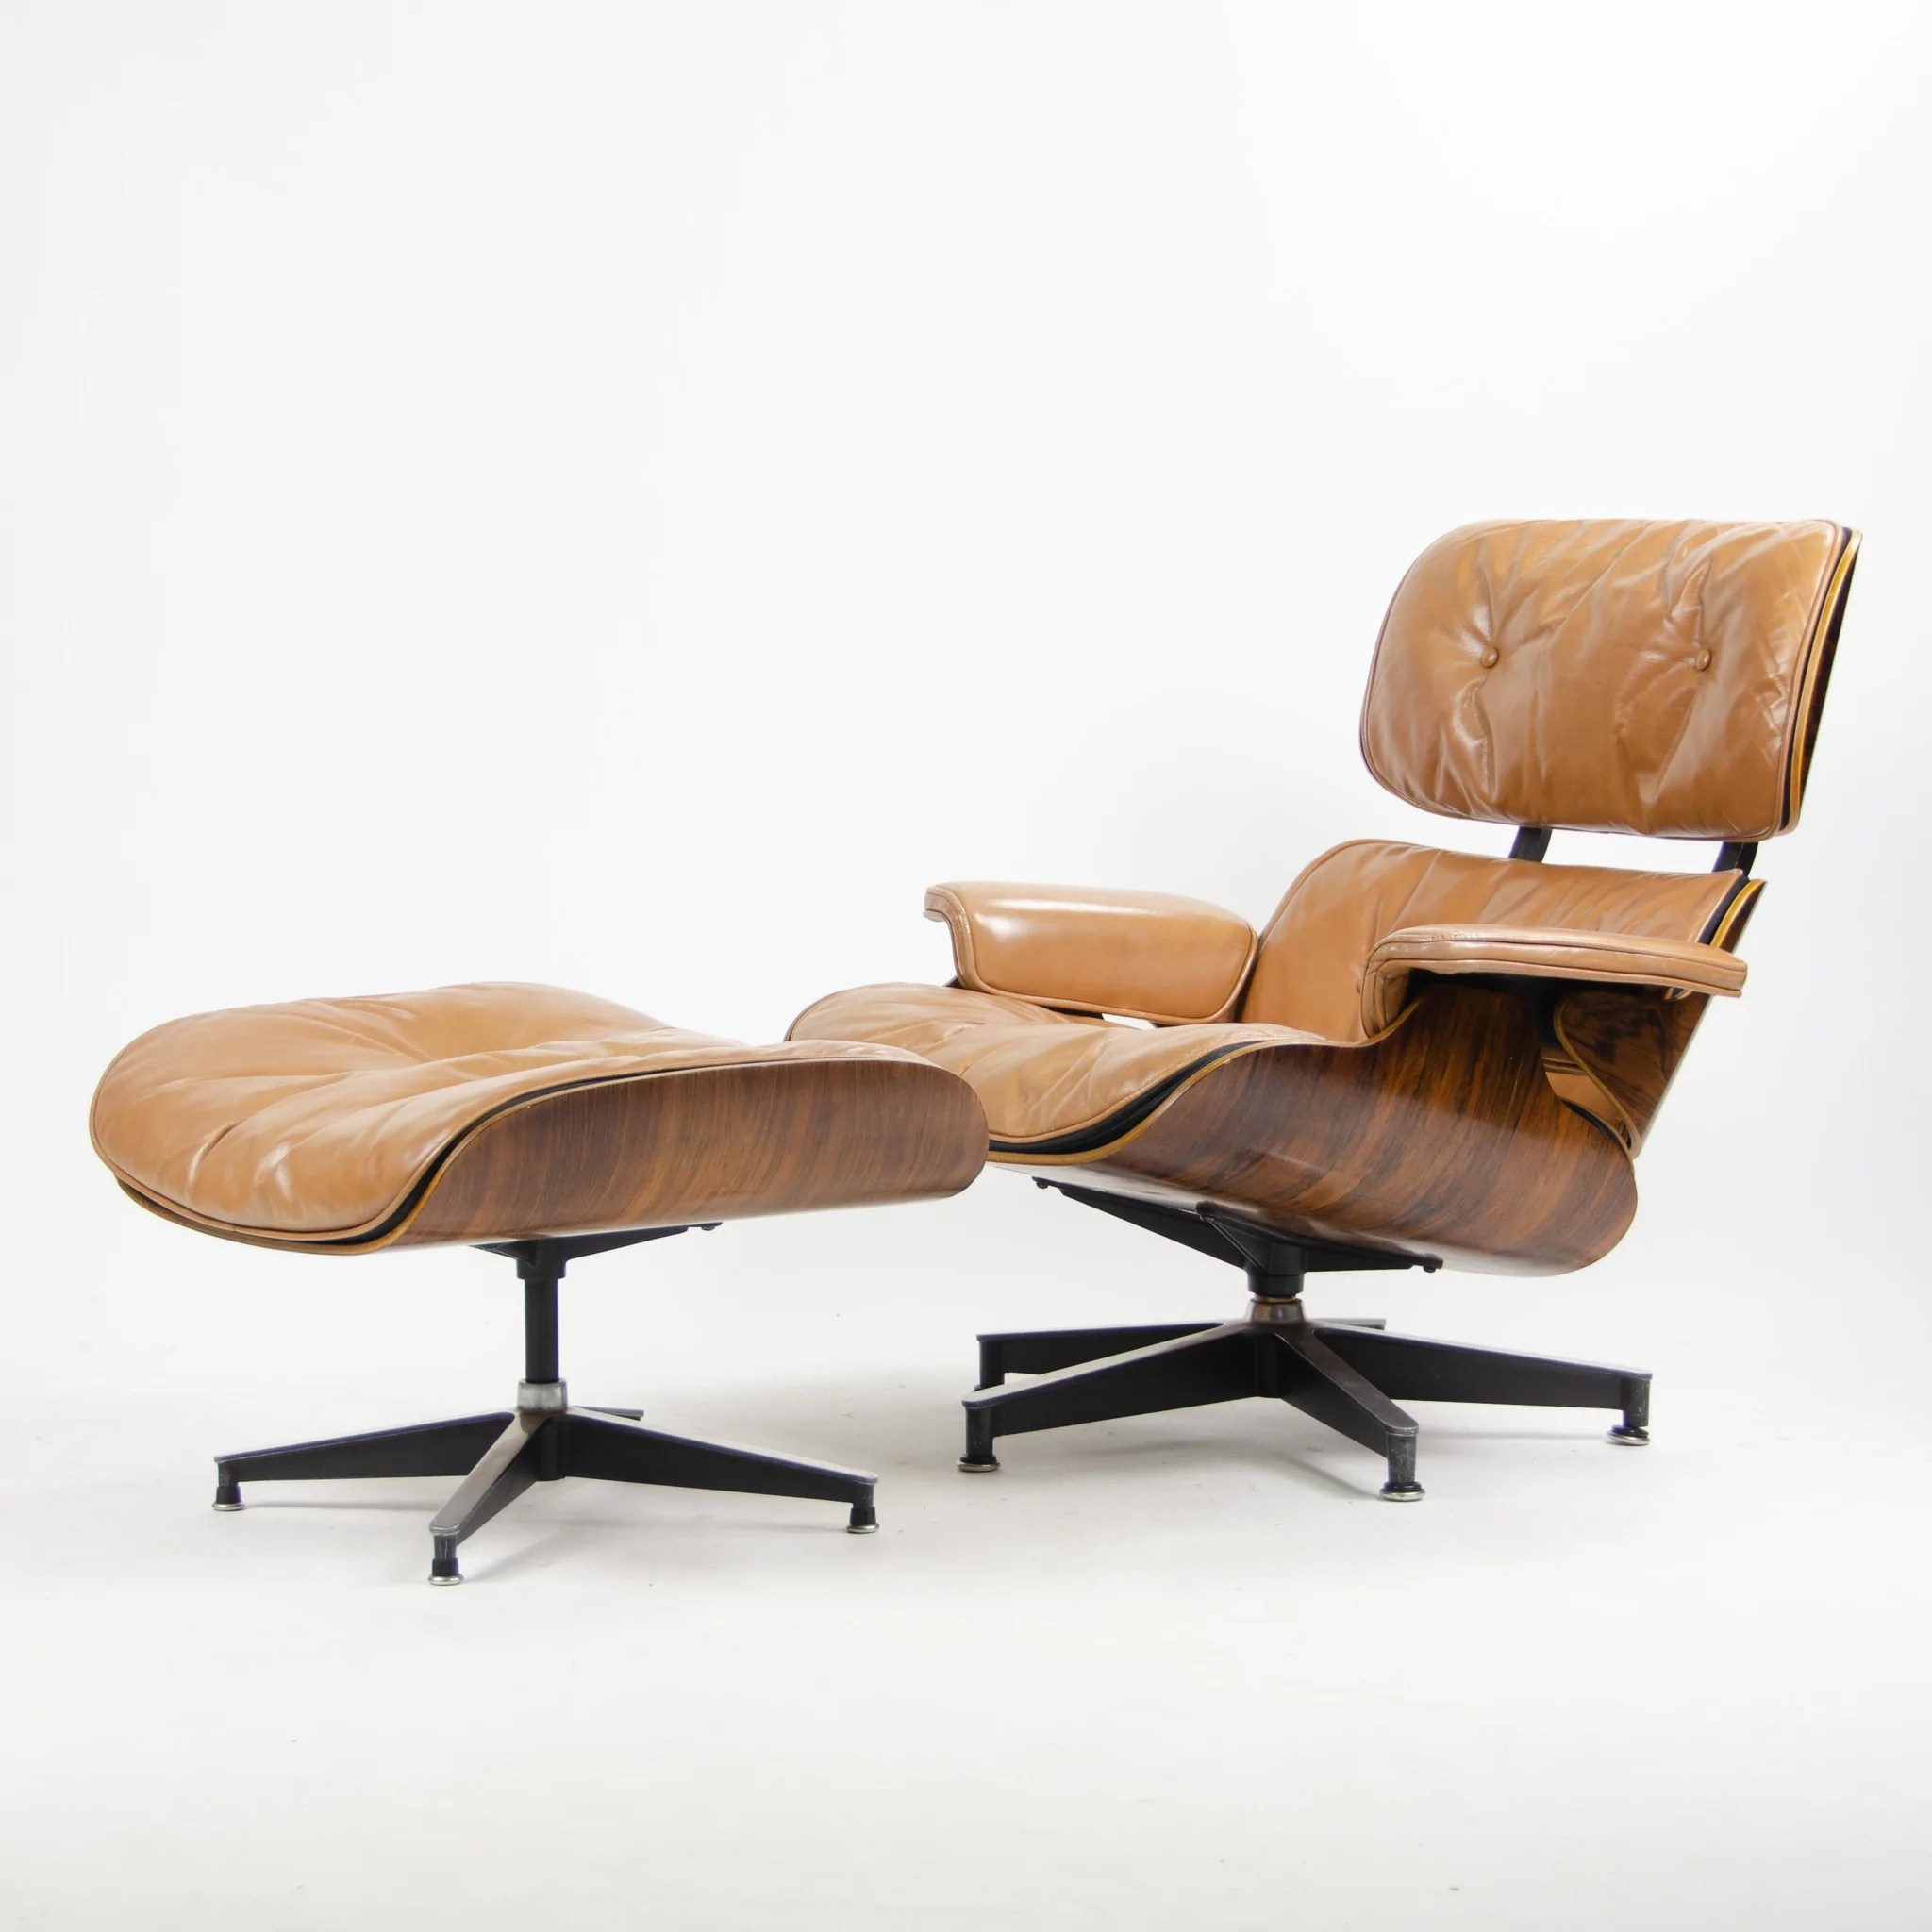 Eames Lounge Chair Zubehör Sold 1956 Herman Miller Eames Lounge Chair Ottoman 670 671 Boot